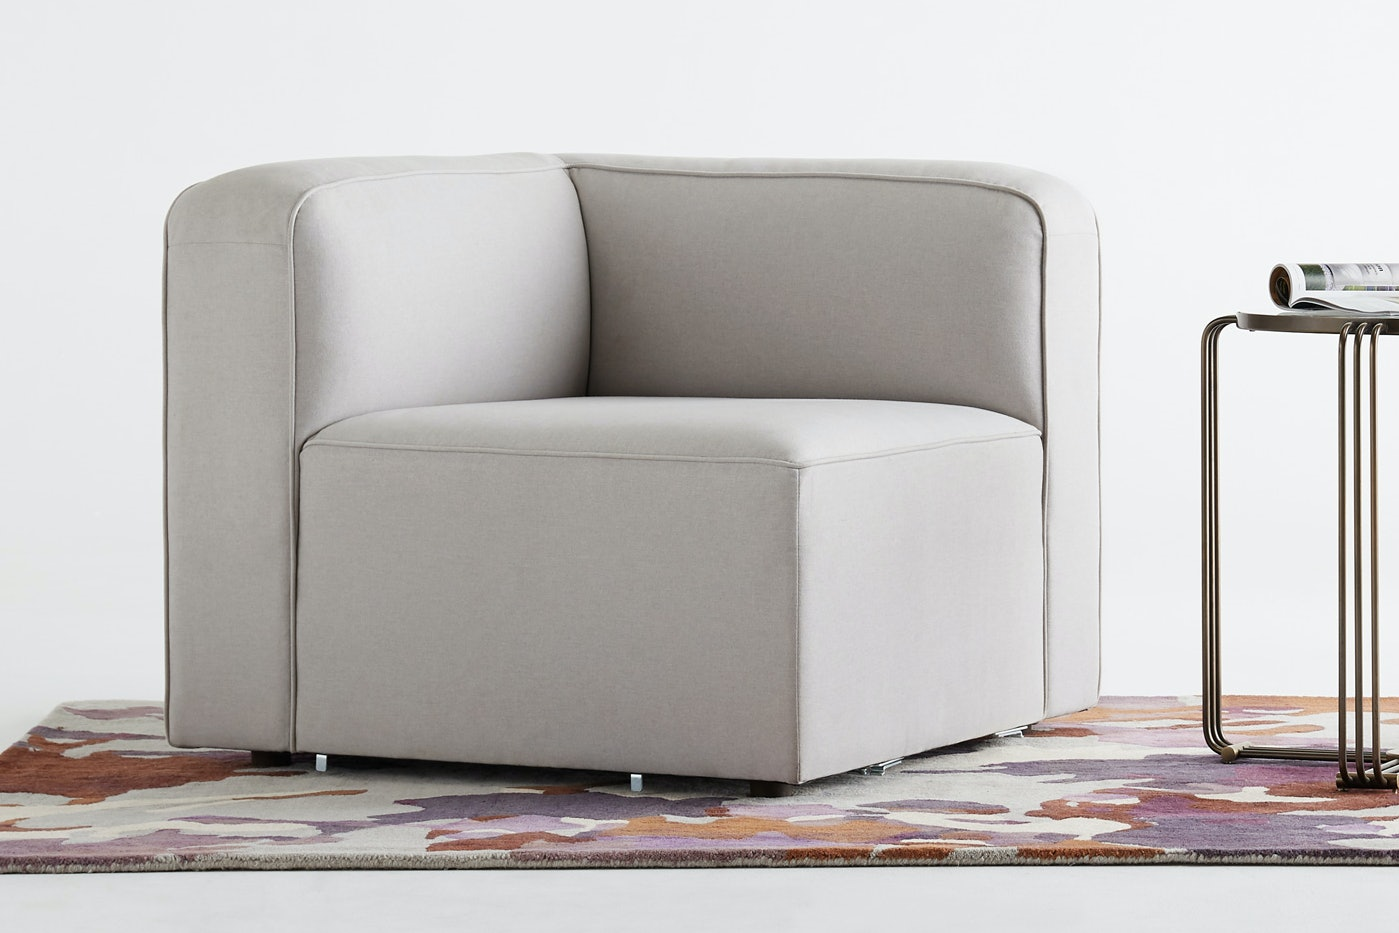 Logan Modular Sectional lastudio 0028hero